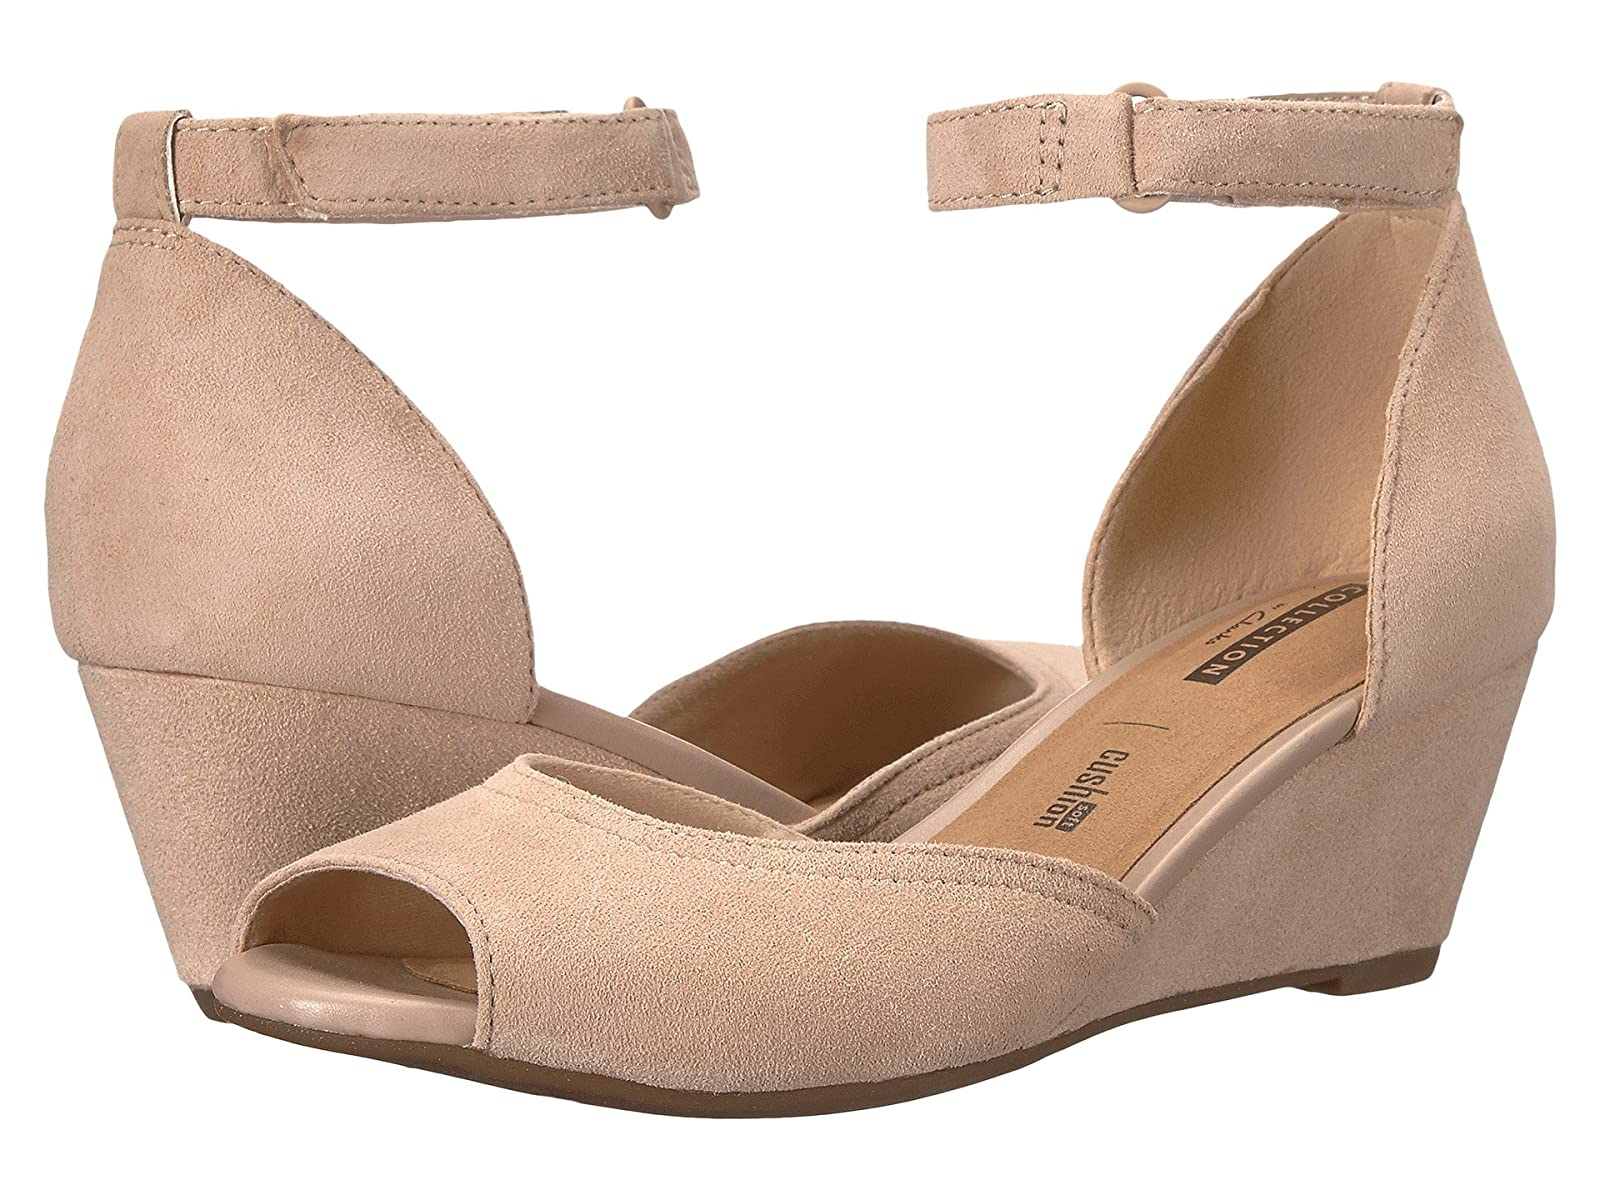 Clarks Flores RayeCheap and distinctive eye-catching shoes